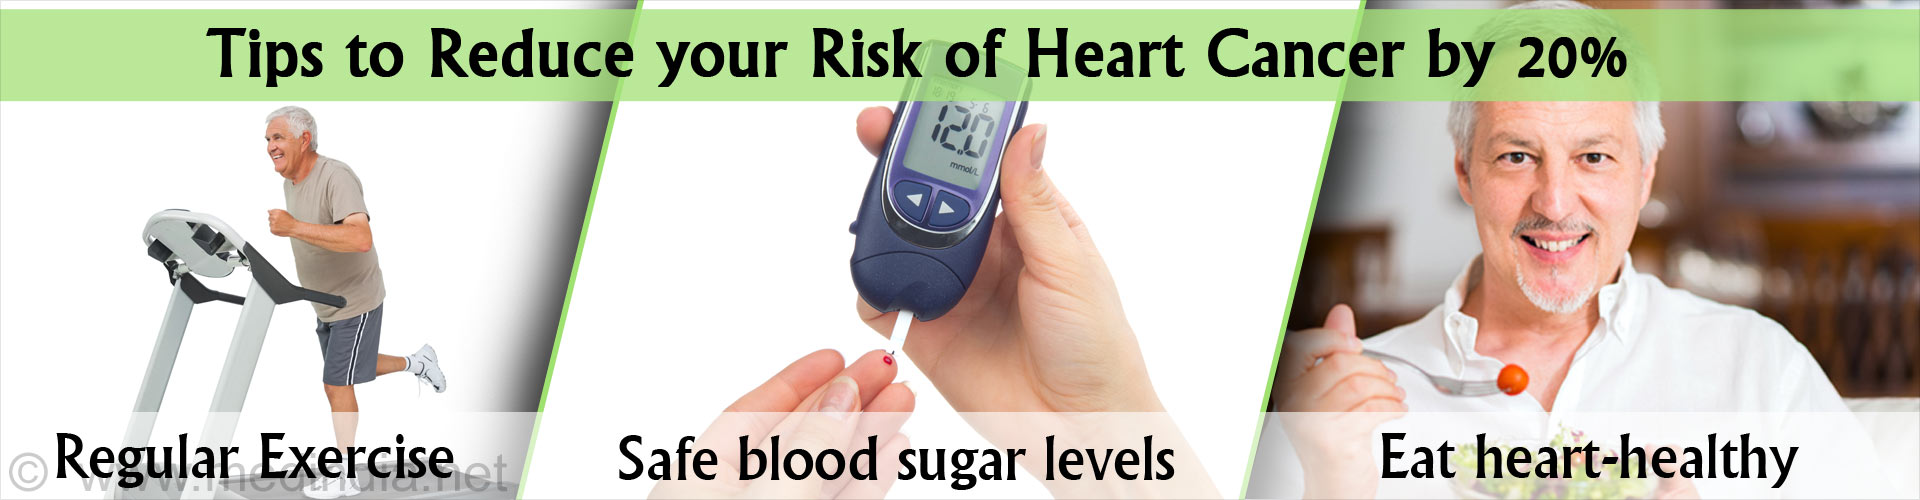 Tips to reduce your risk of heart cancer by 20% - Regular exercise - Safe blood sugar levels - Eat heart healthy